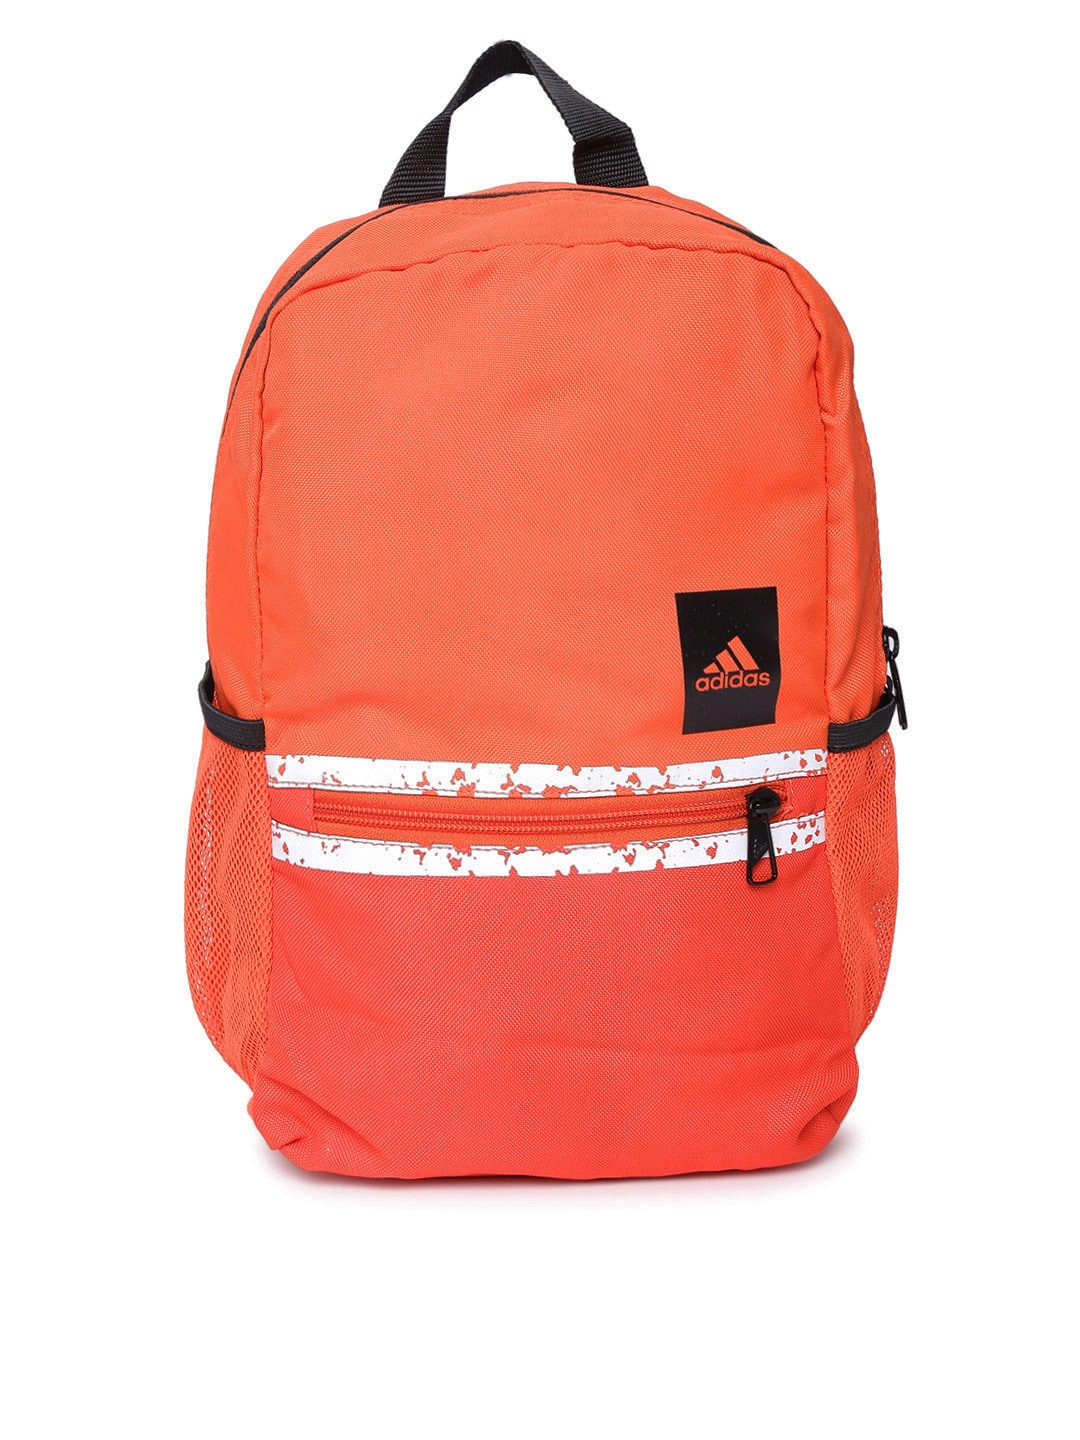 dd515ec06bc Buy adidas backpack red   OFF72% Discounted